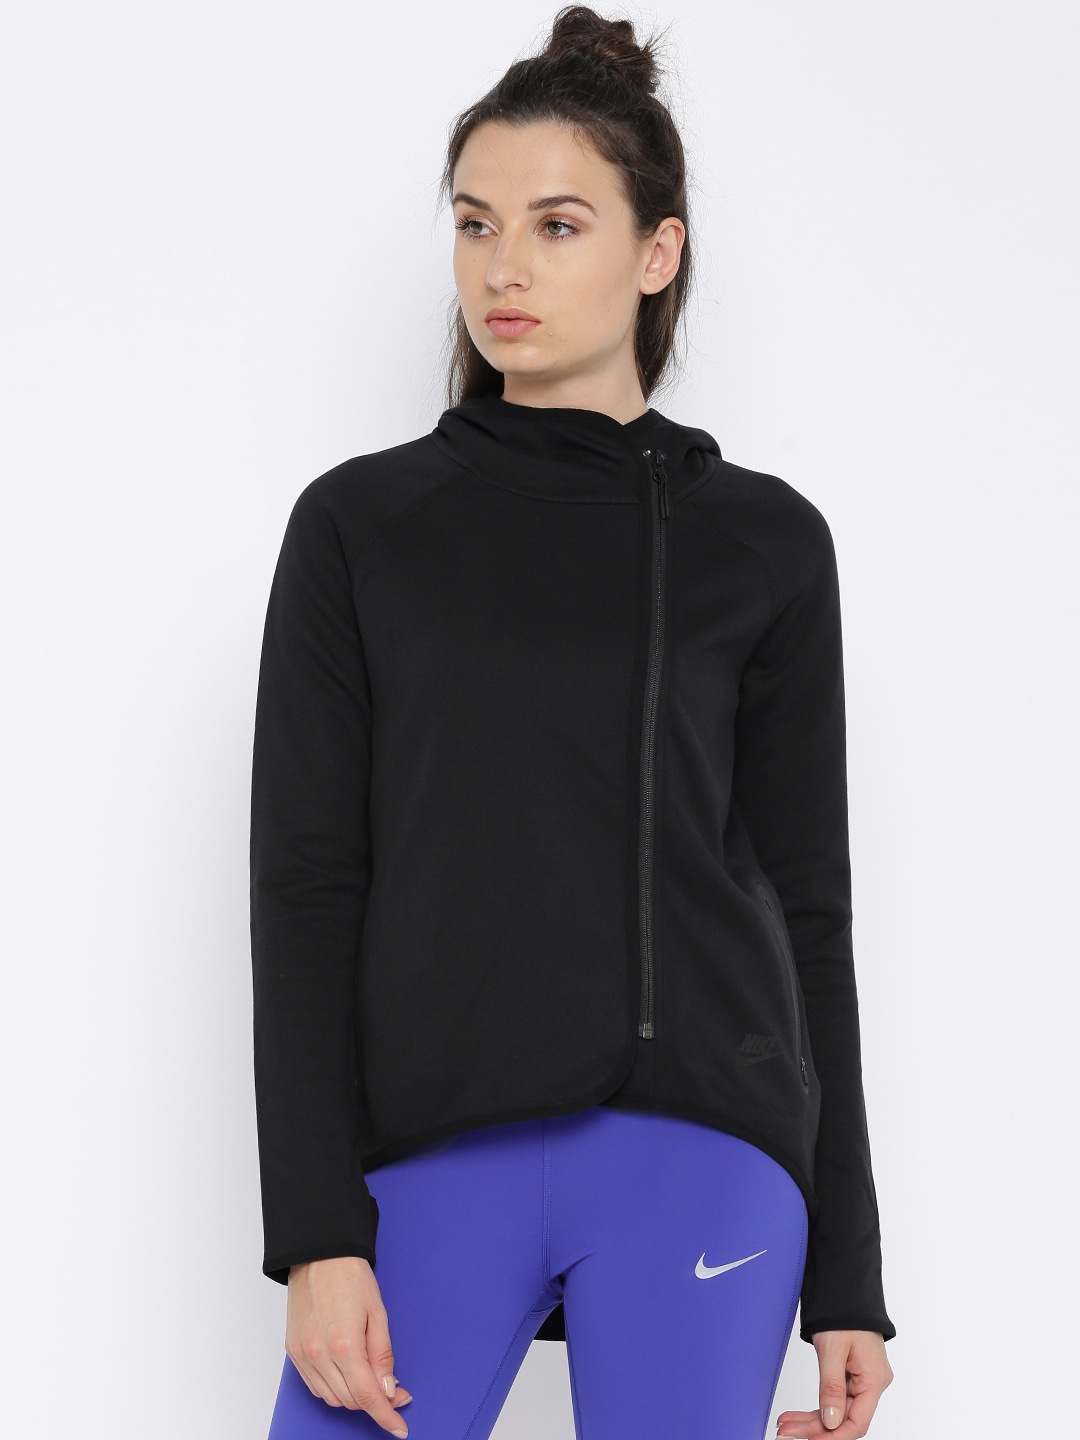 b3714478 Womens Nike | Buy Nike Clothing & Accessories for Women Online in India at  Best Price